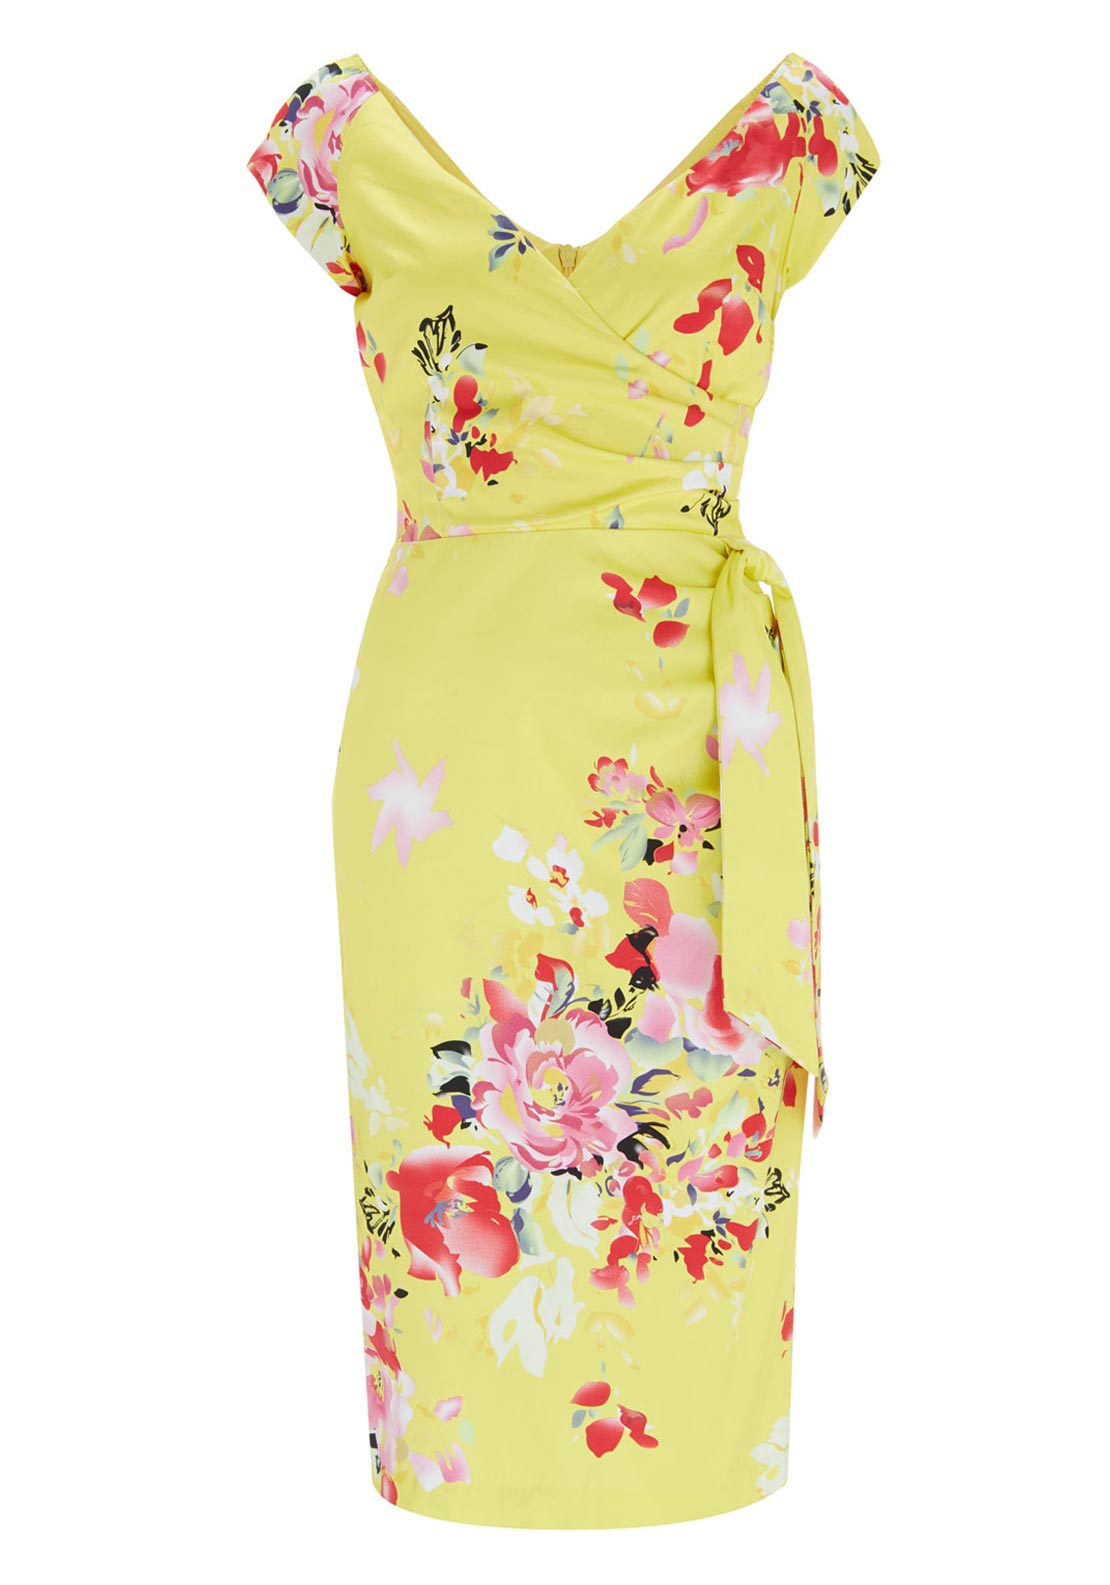 The Pretty Dress Company Seville Hourglass Floral Print Dress, Lemon